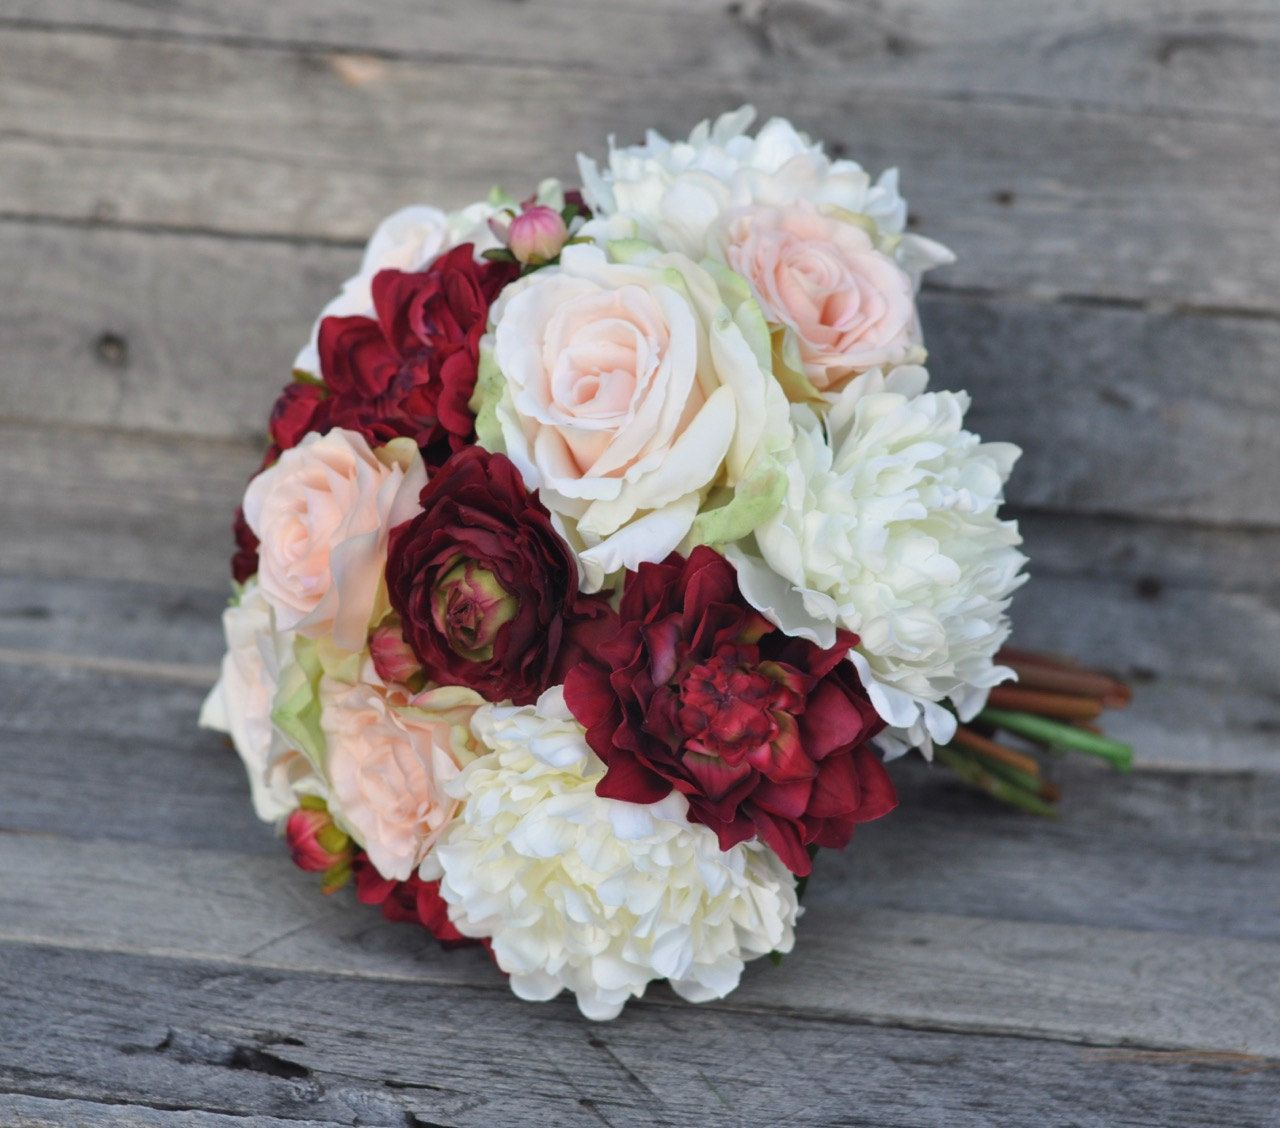 Silk Flower Wedding Bouquets From Hollys Flower Shoppe Shipping